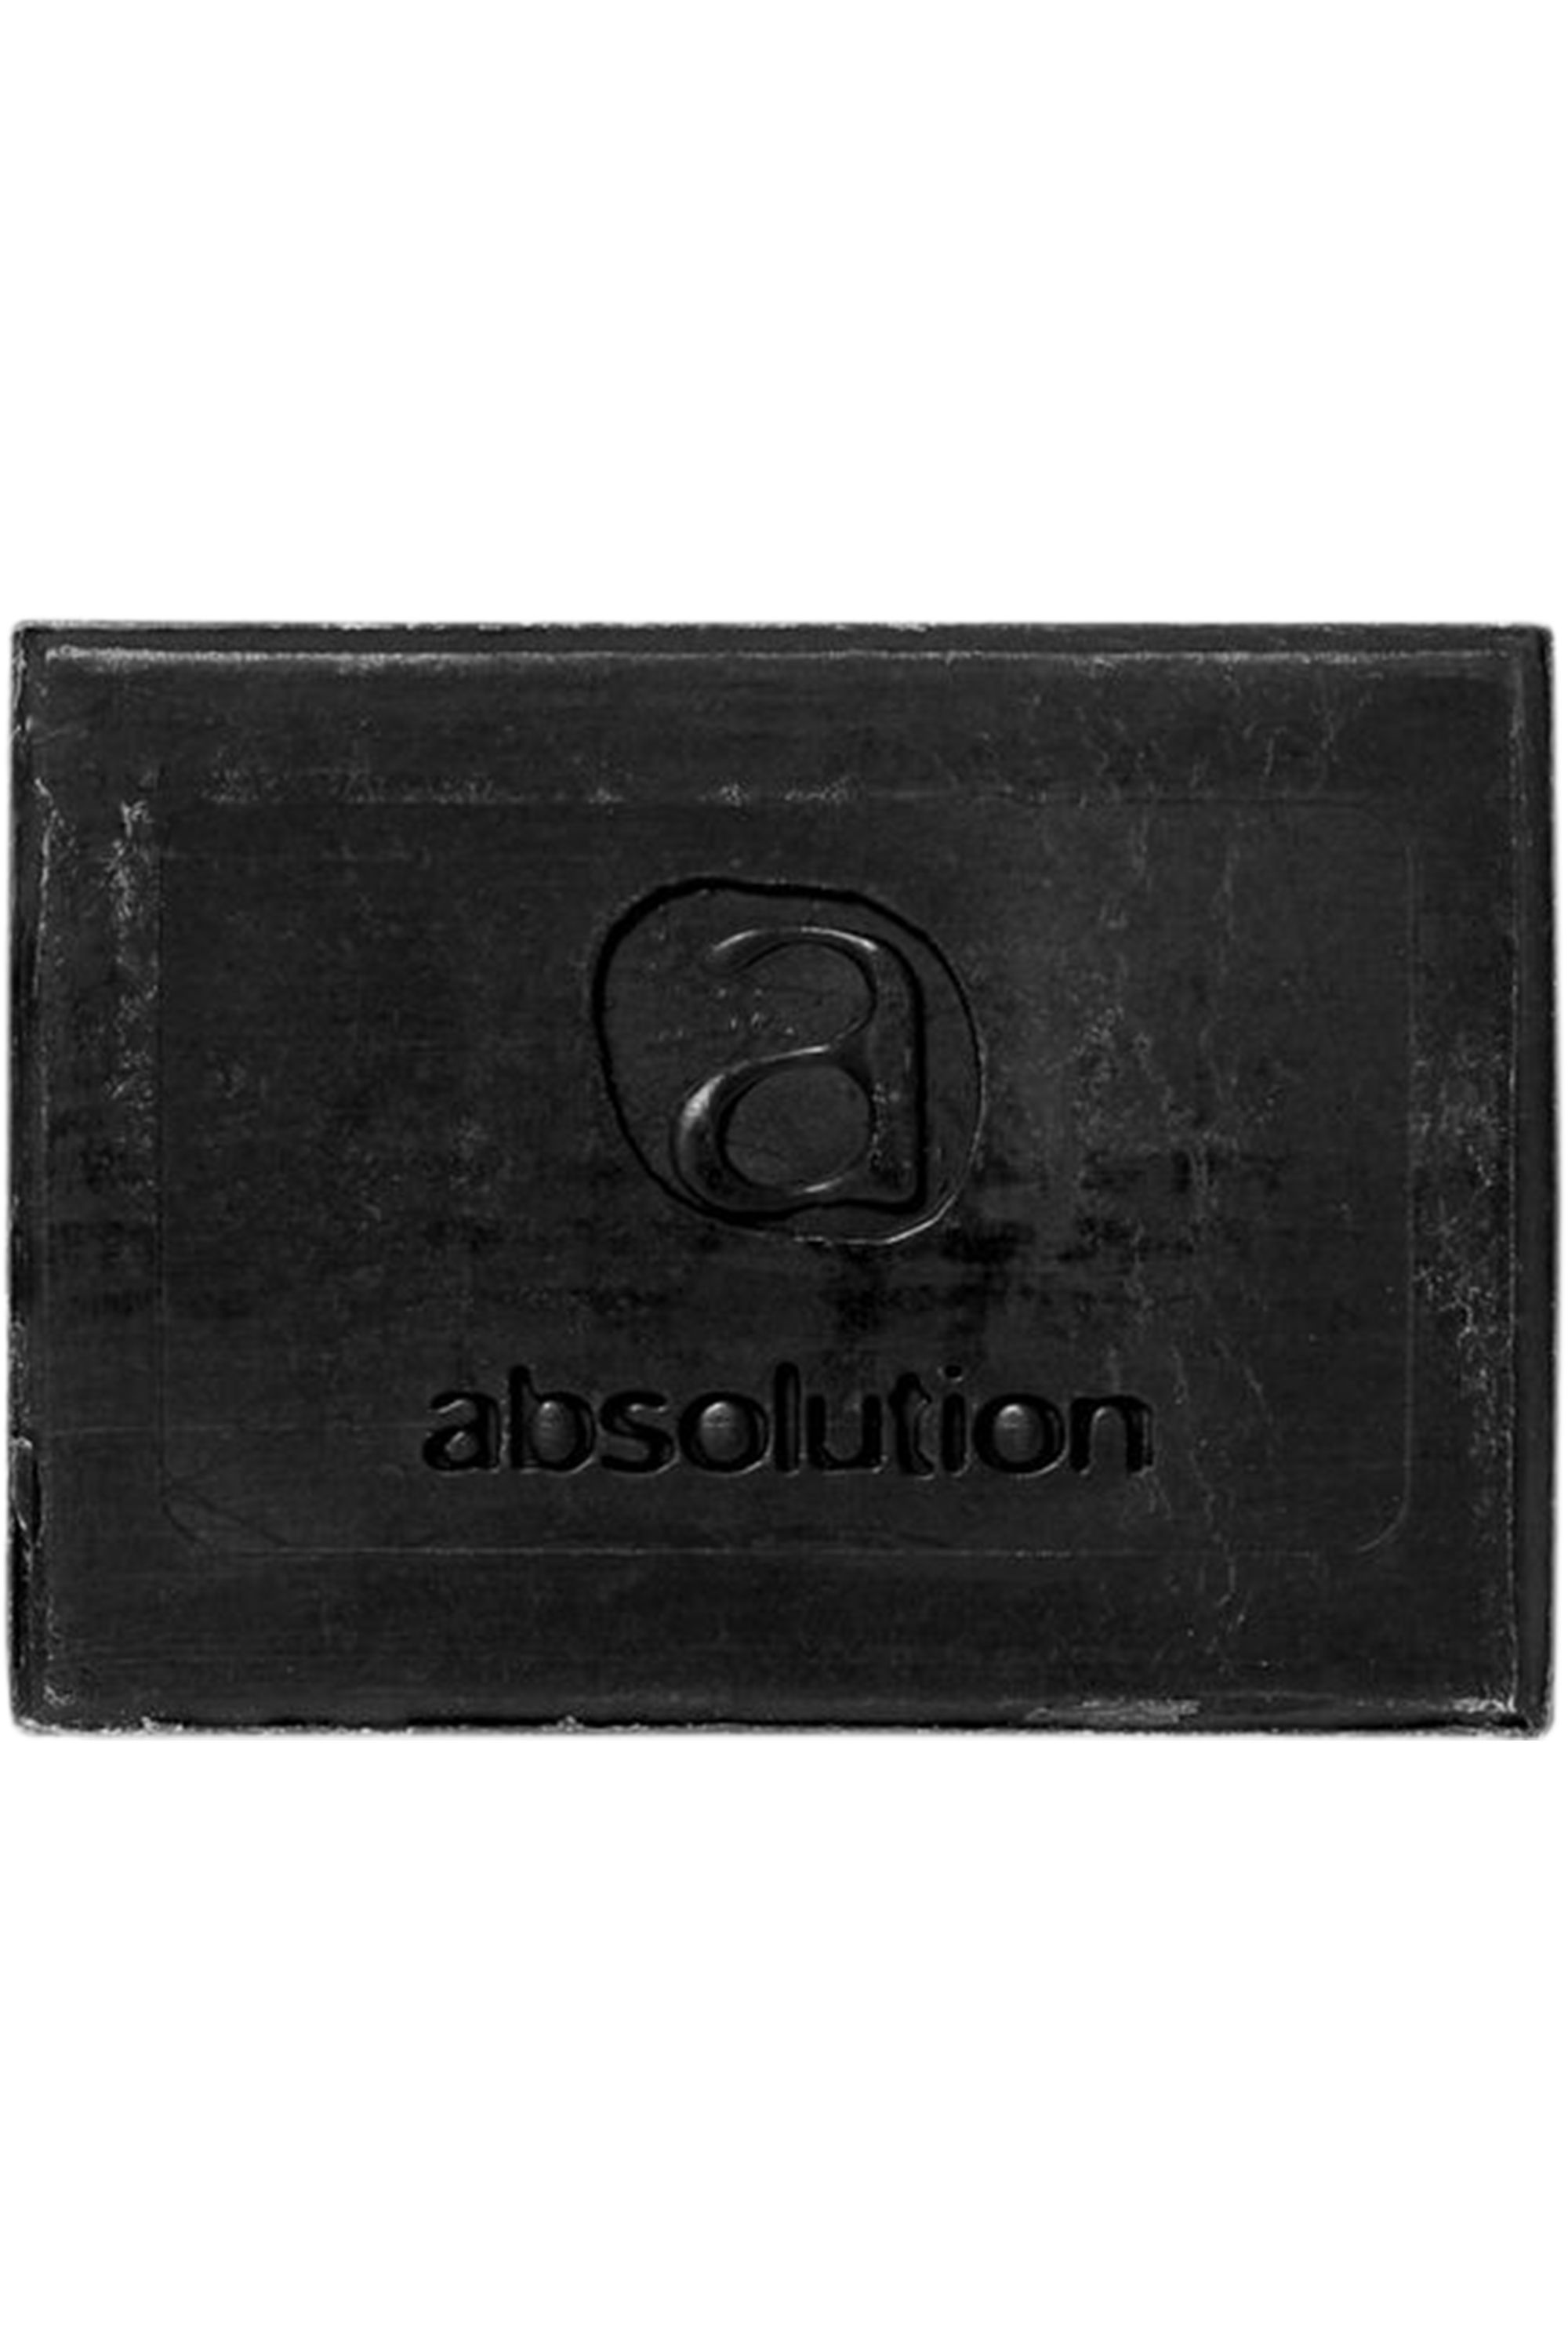 Blissim : Absolution - Le Savon Noir - Le Savon Noir